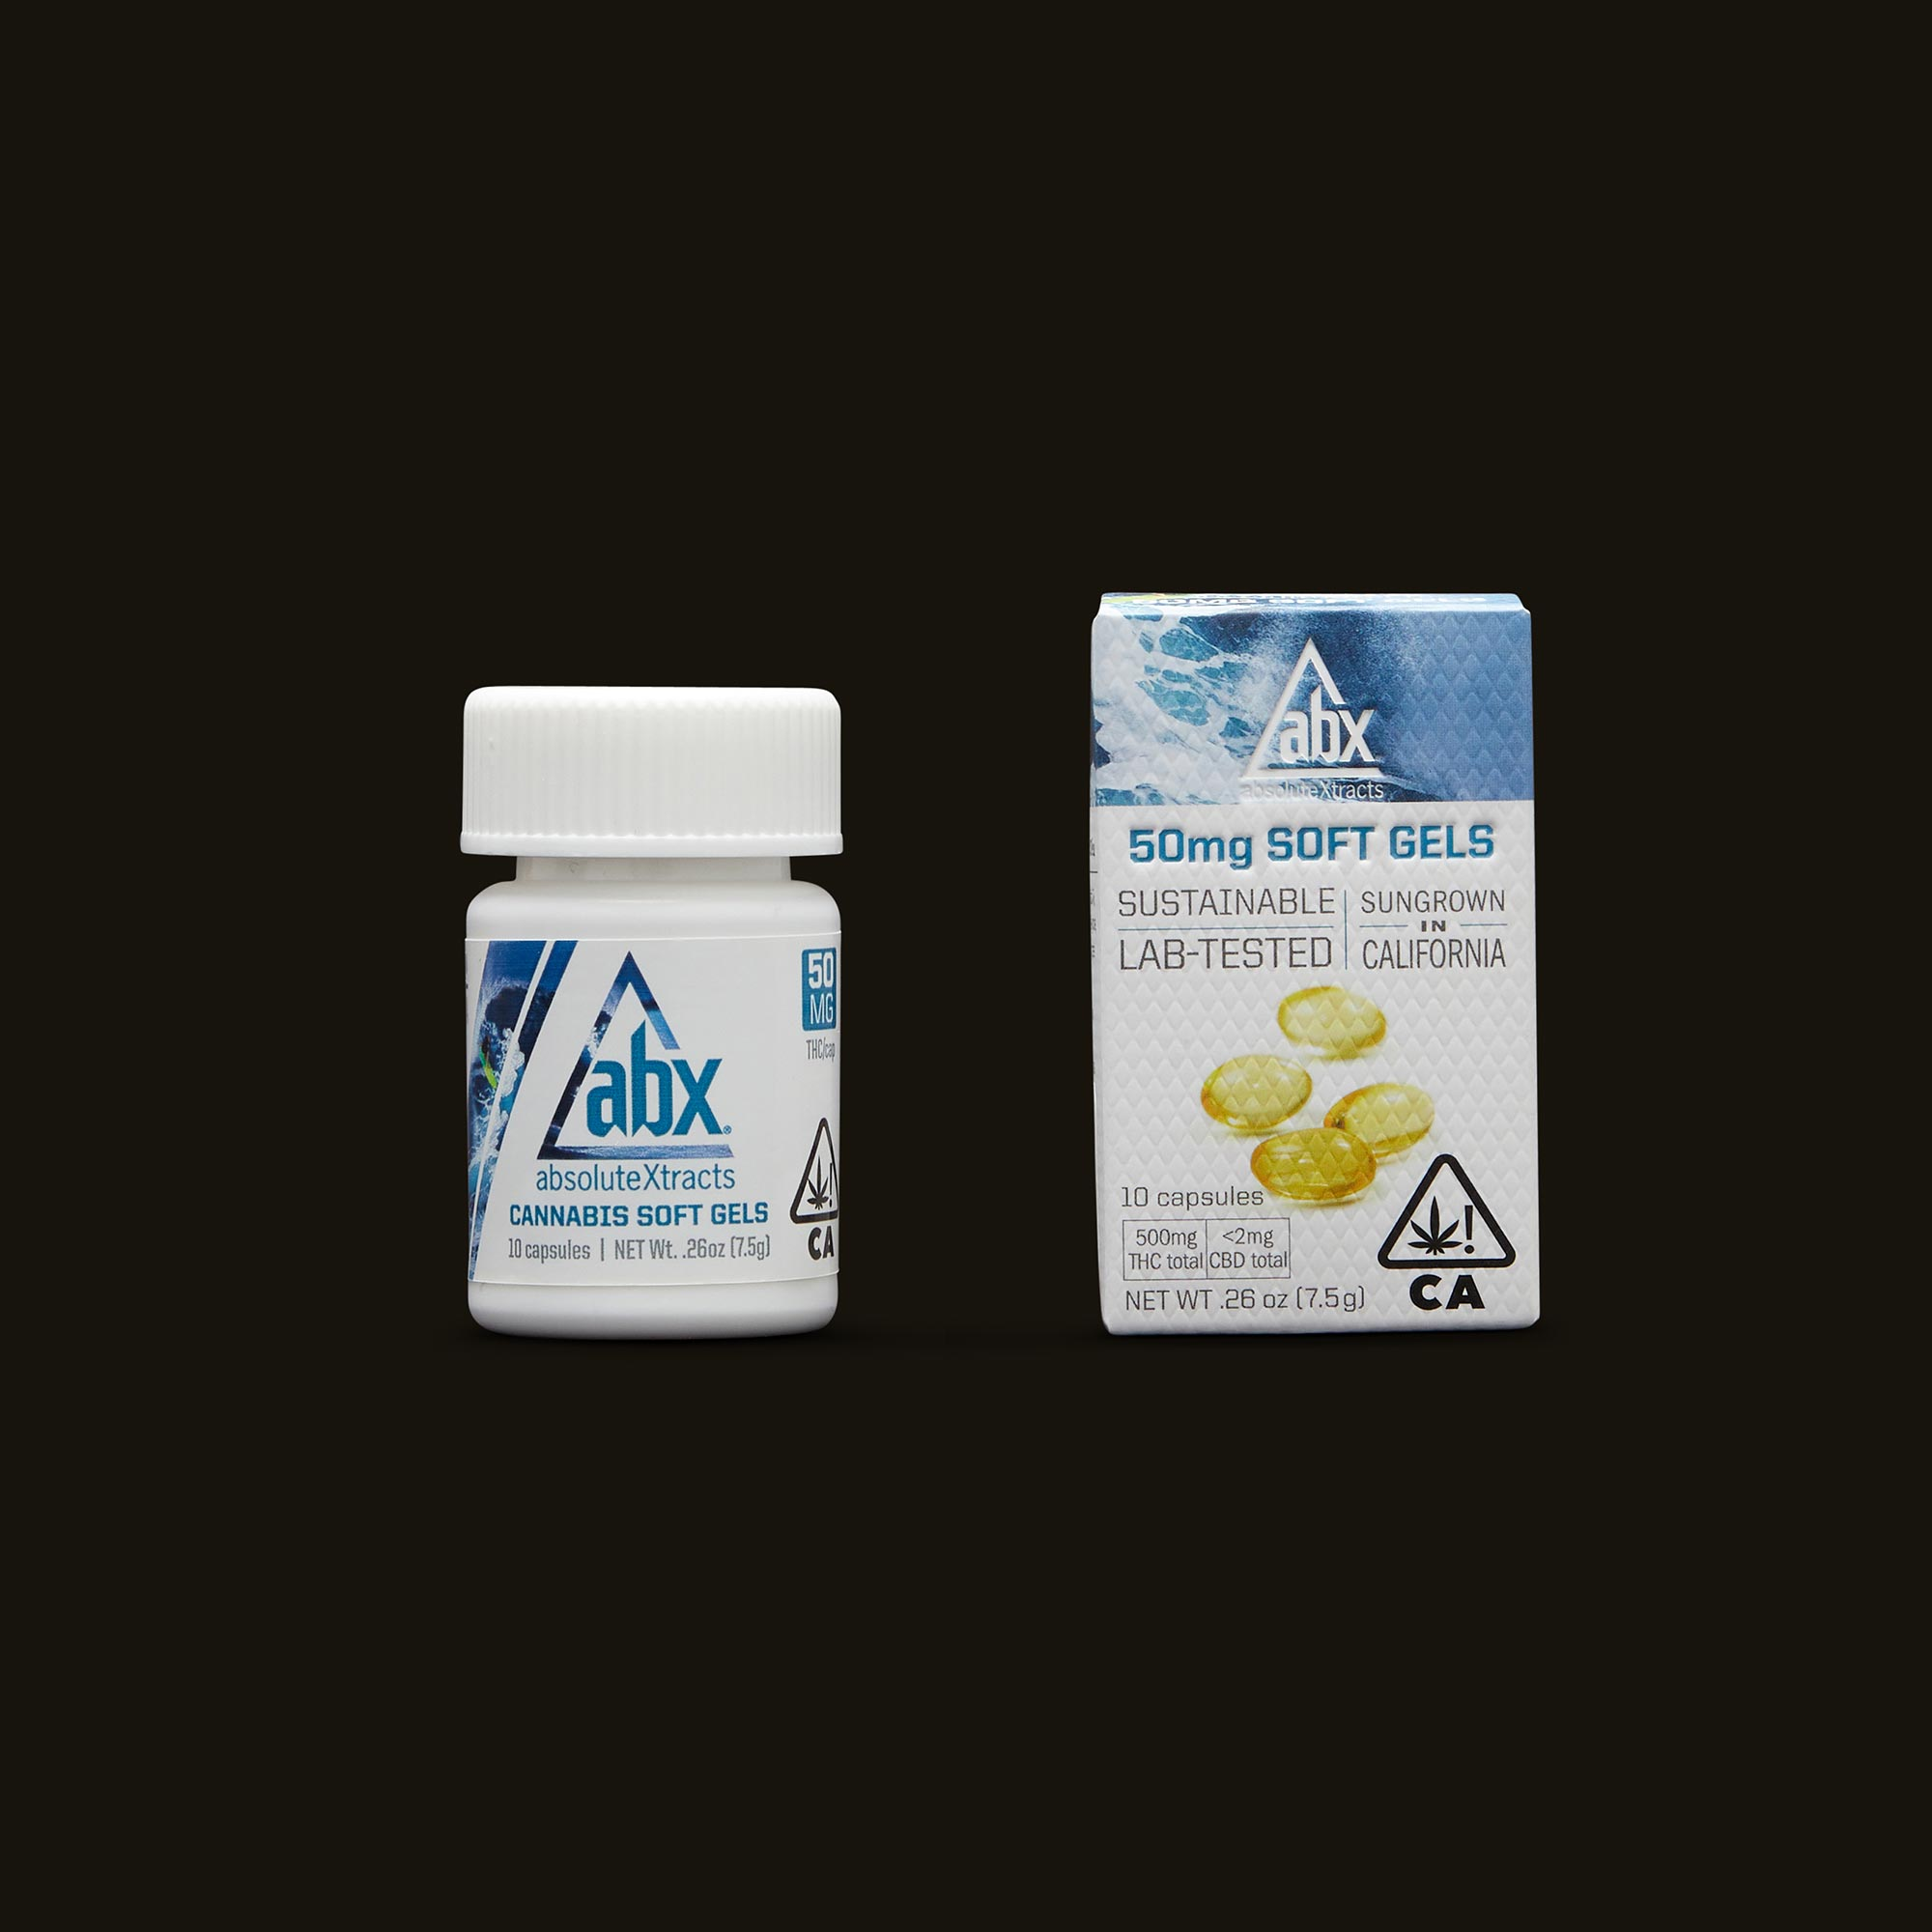 Bottle and Box of Absolute Extracts Capsules